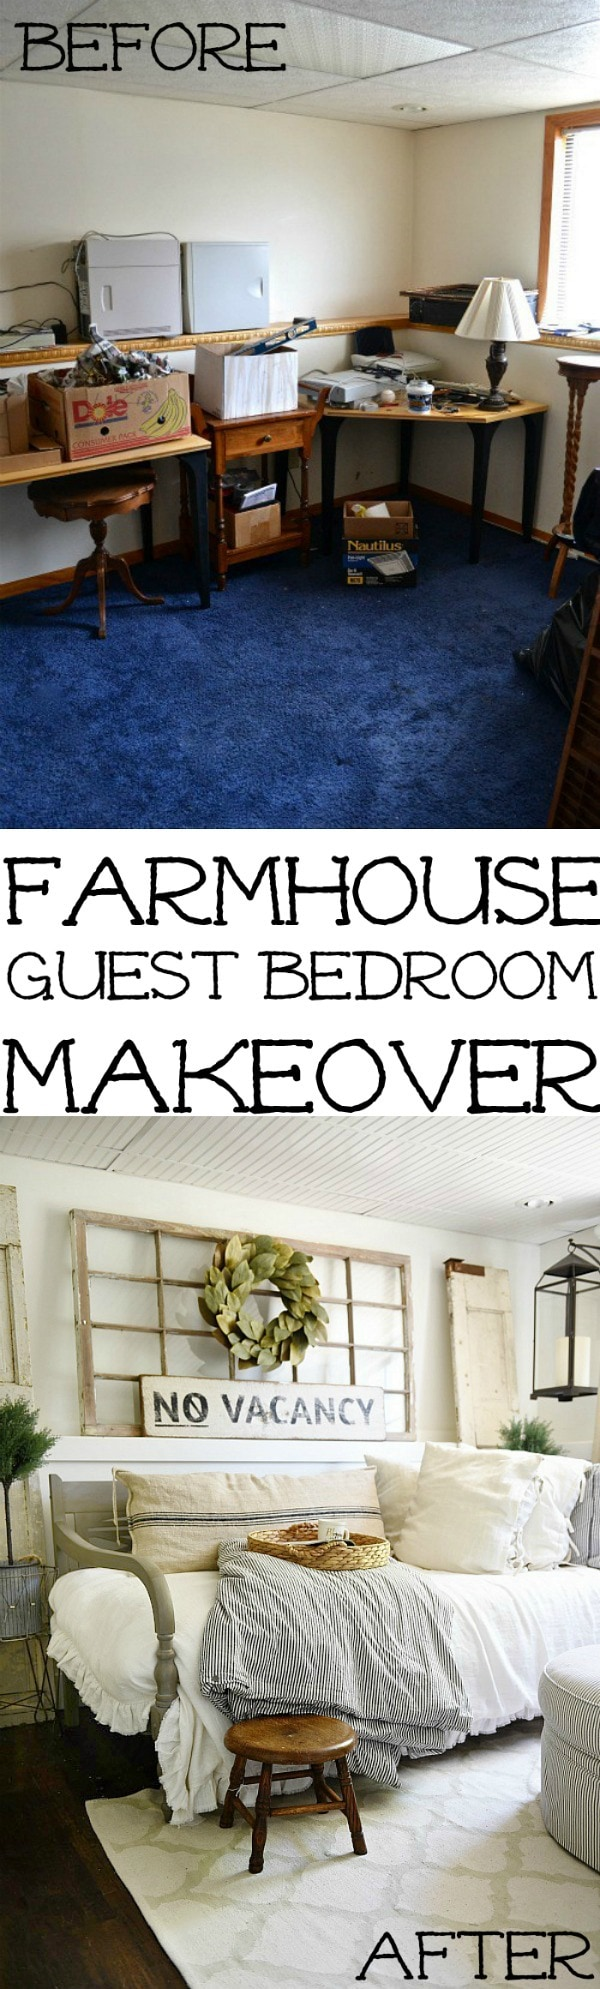 Guest bedroom makeover - See how this bedroom was turned into a dreamy farmhouse guest bedroom with all of the sources! A great blog for farmhouse decor inspiration!